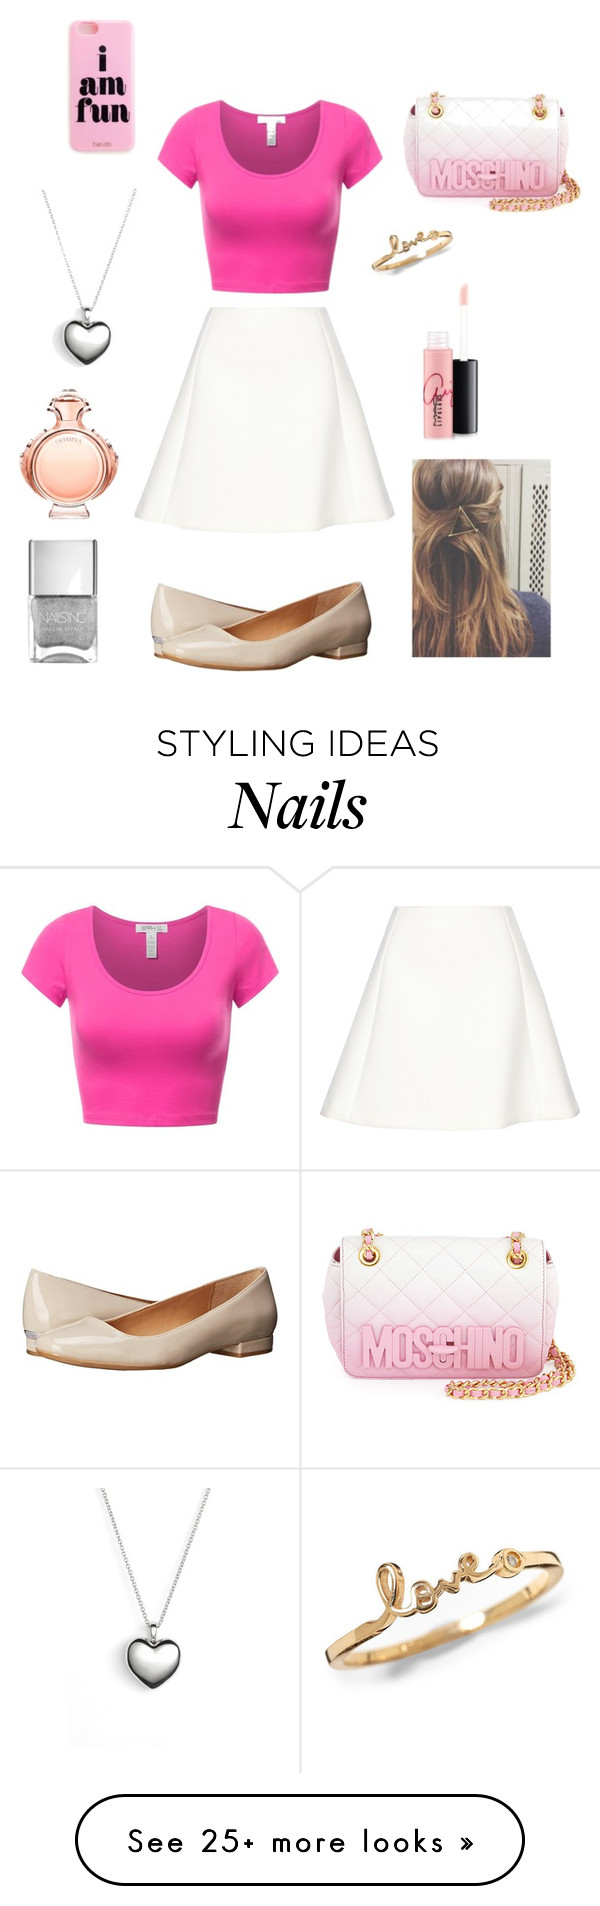 """Pink contest"" by sosfamforlife on Polyvore featuring Neil Barrett, Calvin Klein, Moschino, Pandora, Paco Rabanne, MAC Cosmetics, women's clothing, women, female and woman"